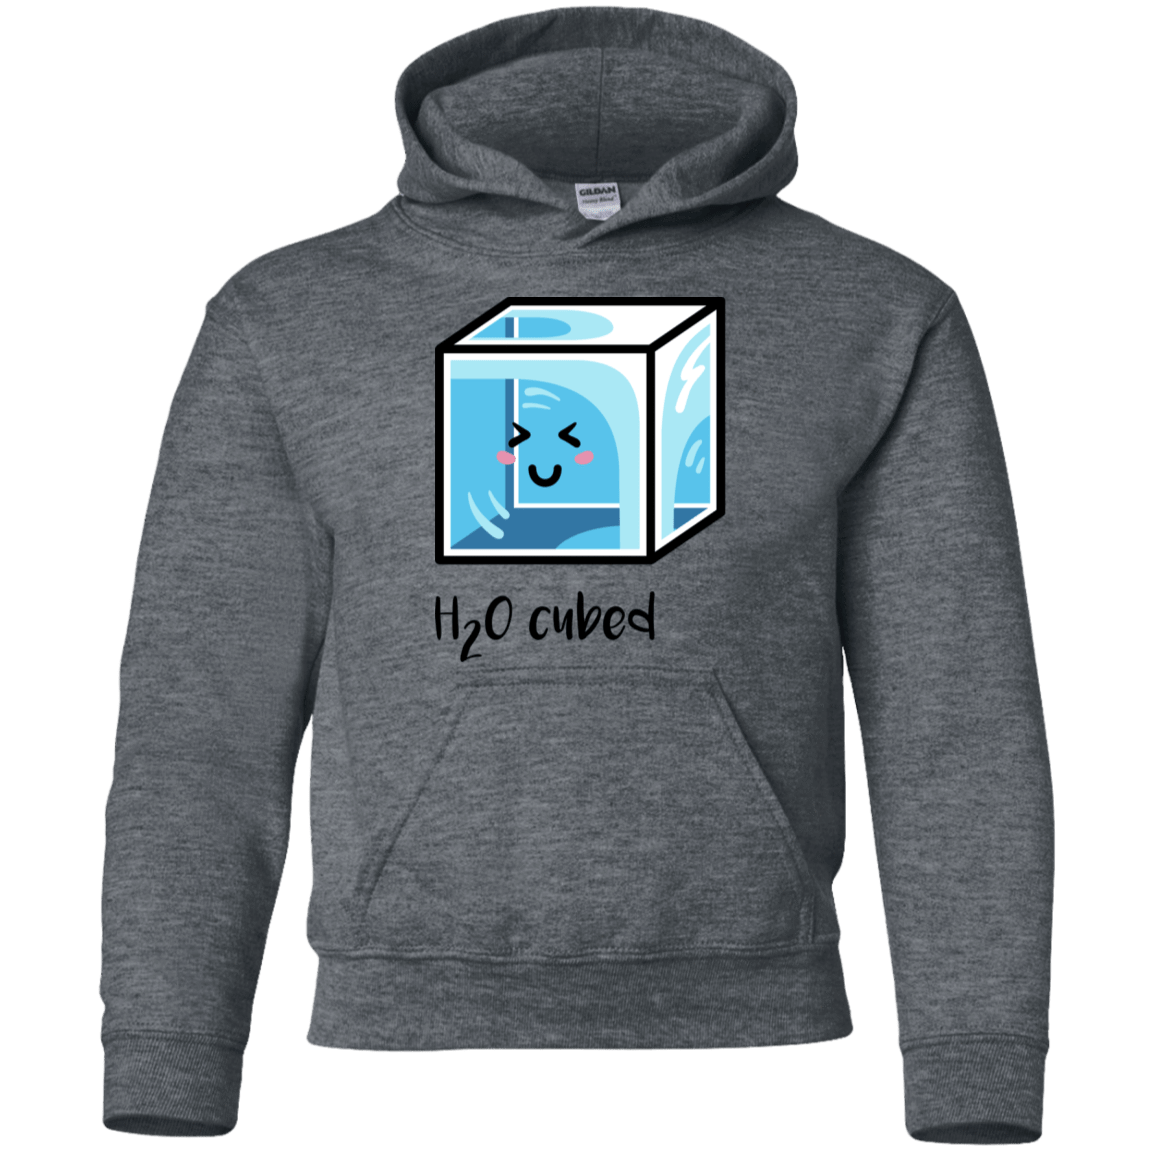 Sweatshirts Dark Heather / YS H2O Cubed Youth Hoodie